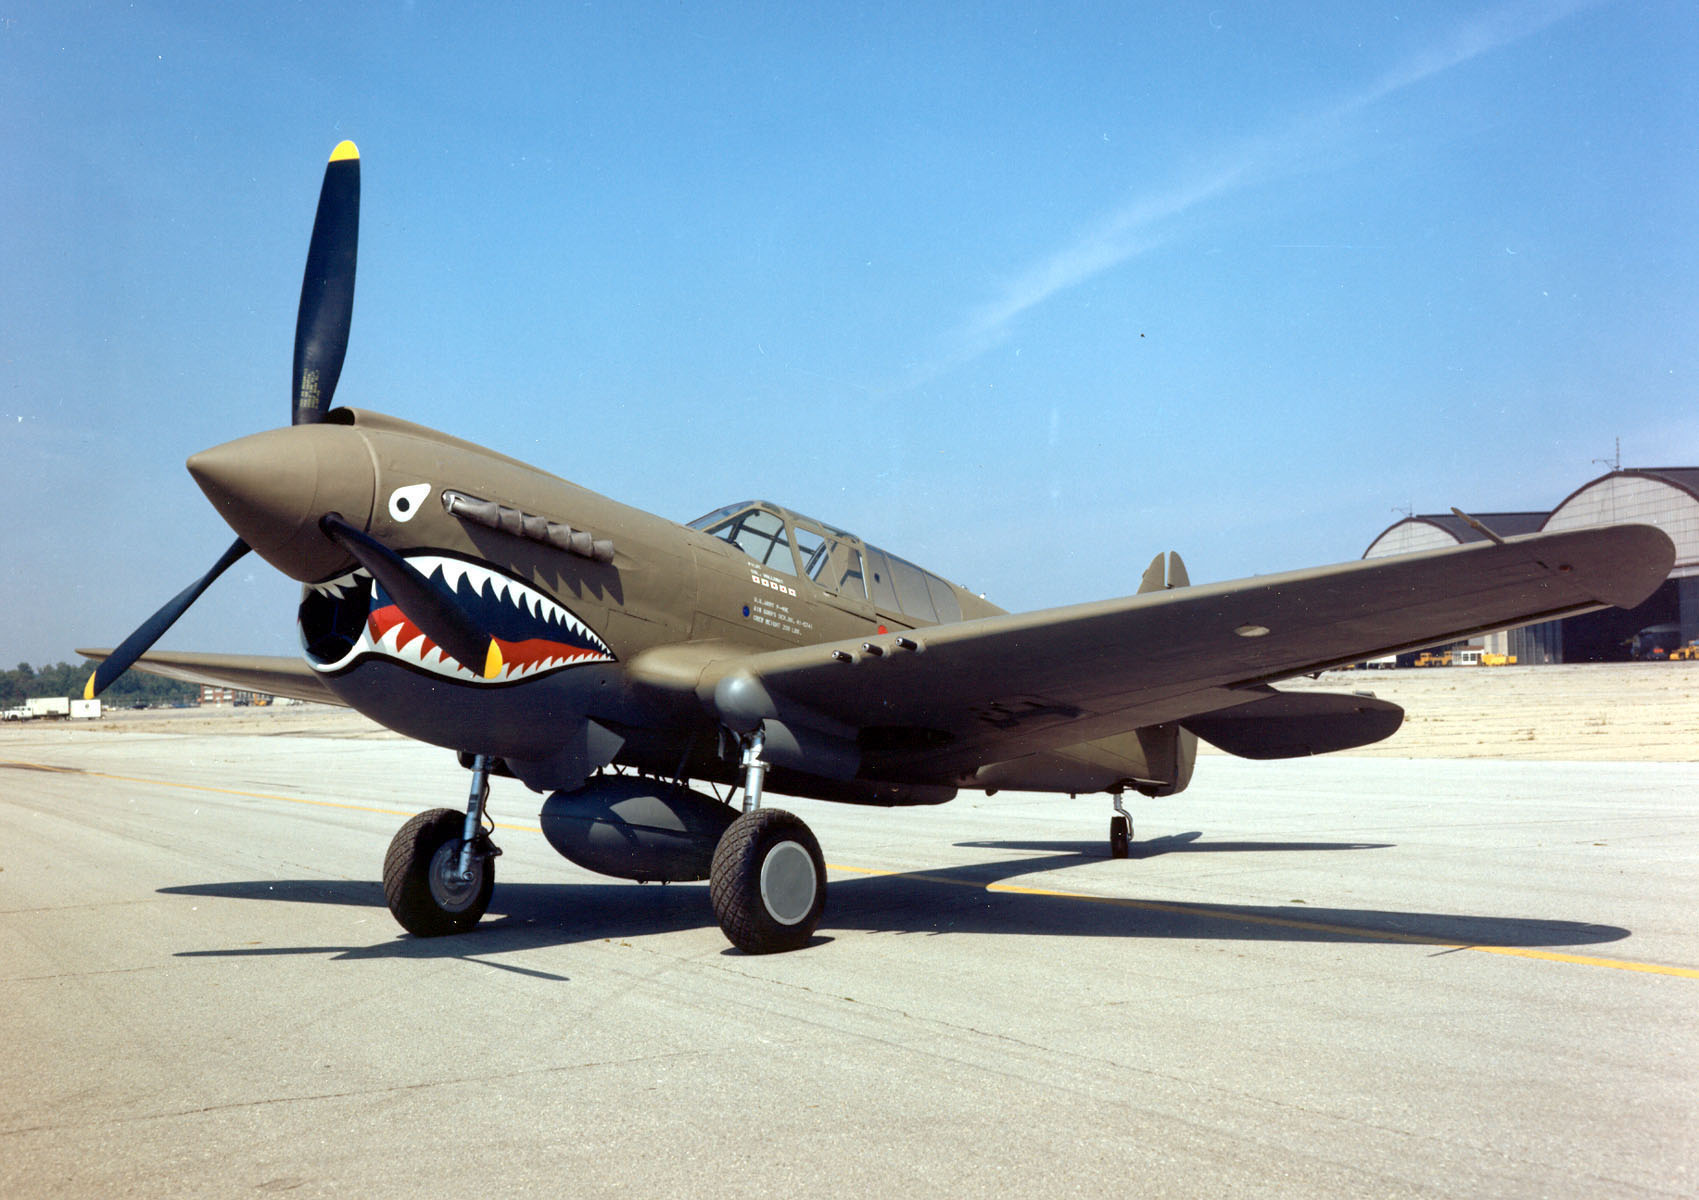 Curtiss P-40 Warhawk - Wikipedia, the free encyclopedia